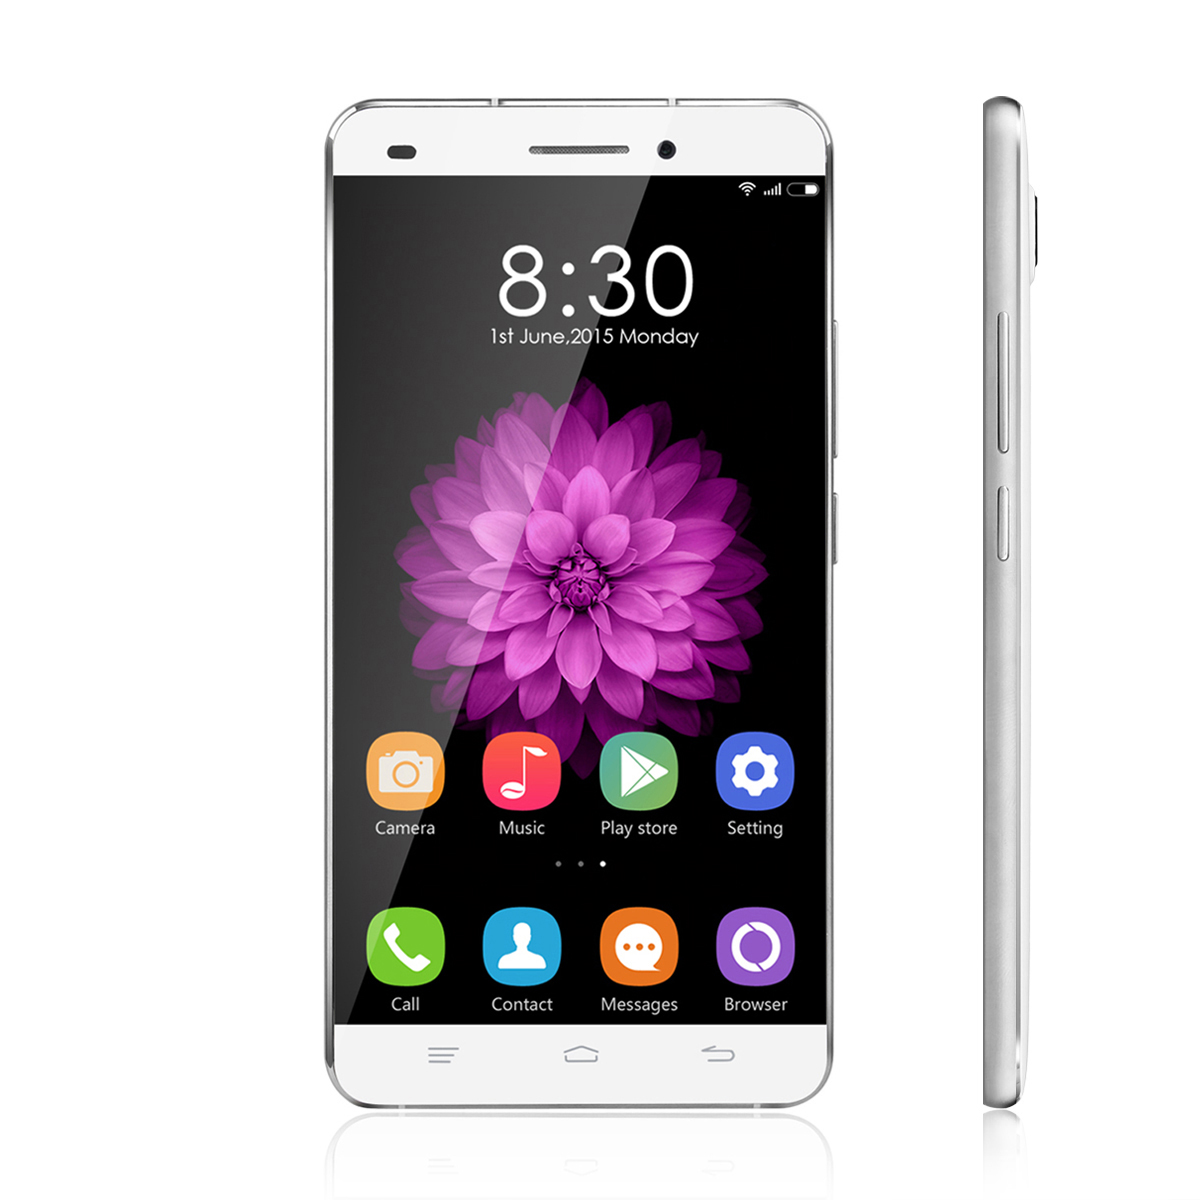 OUKITEL U8 4G Smartphone 5.5 Inch MTK6735M Quad Core Android 5.1 2GB 16GB White